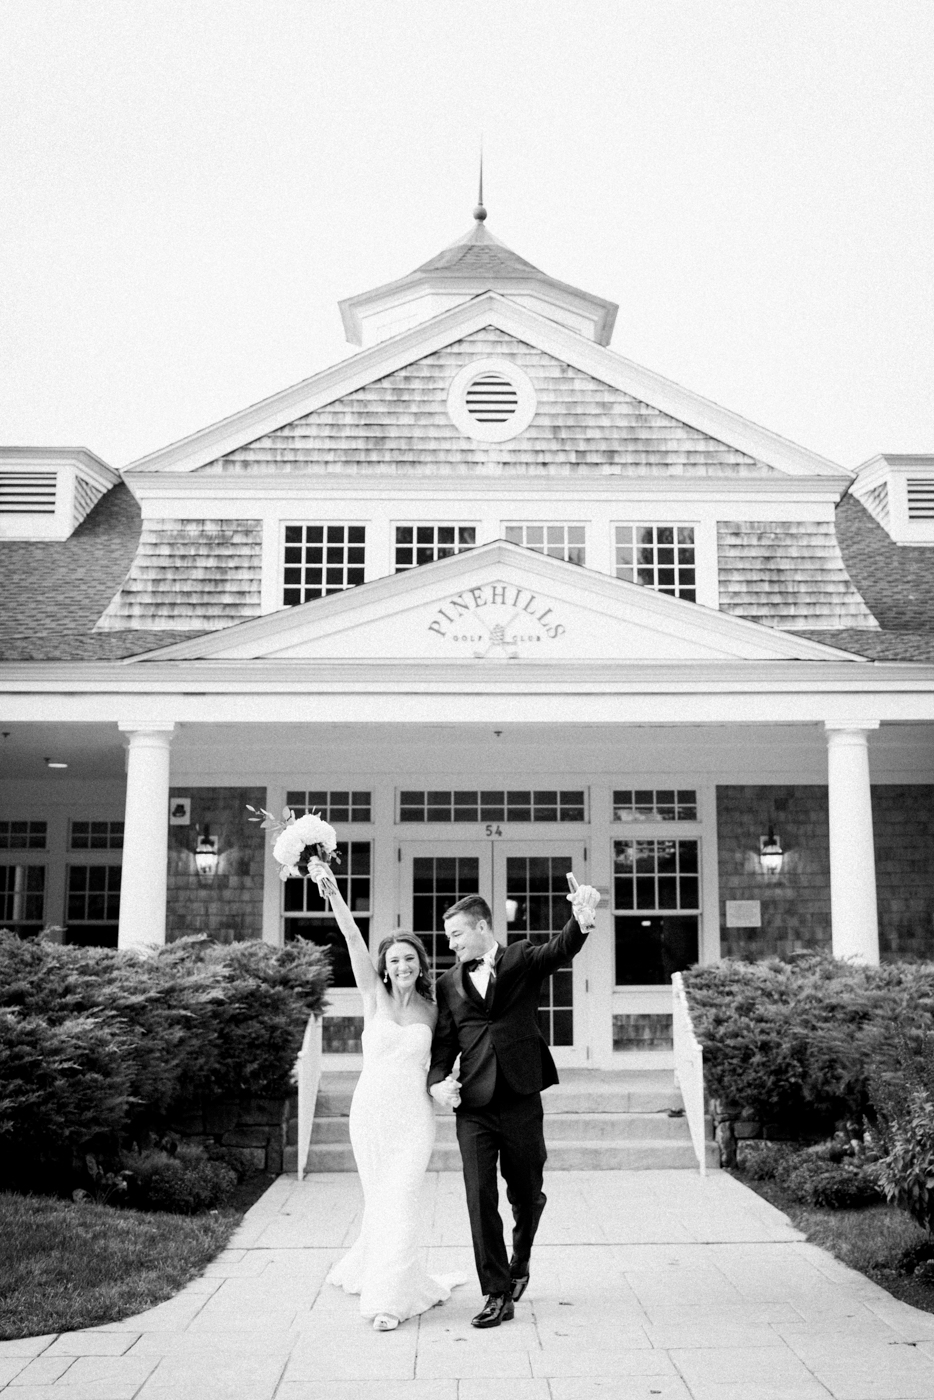 Top wedding photographers in New england